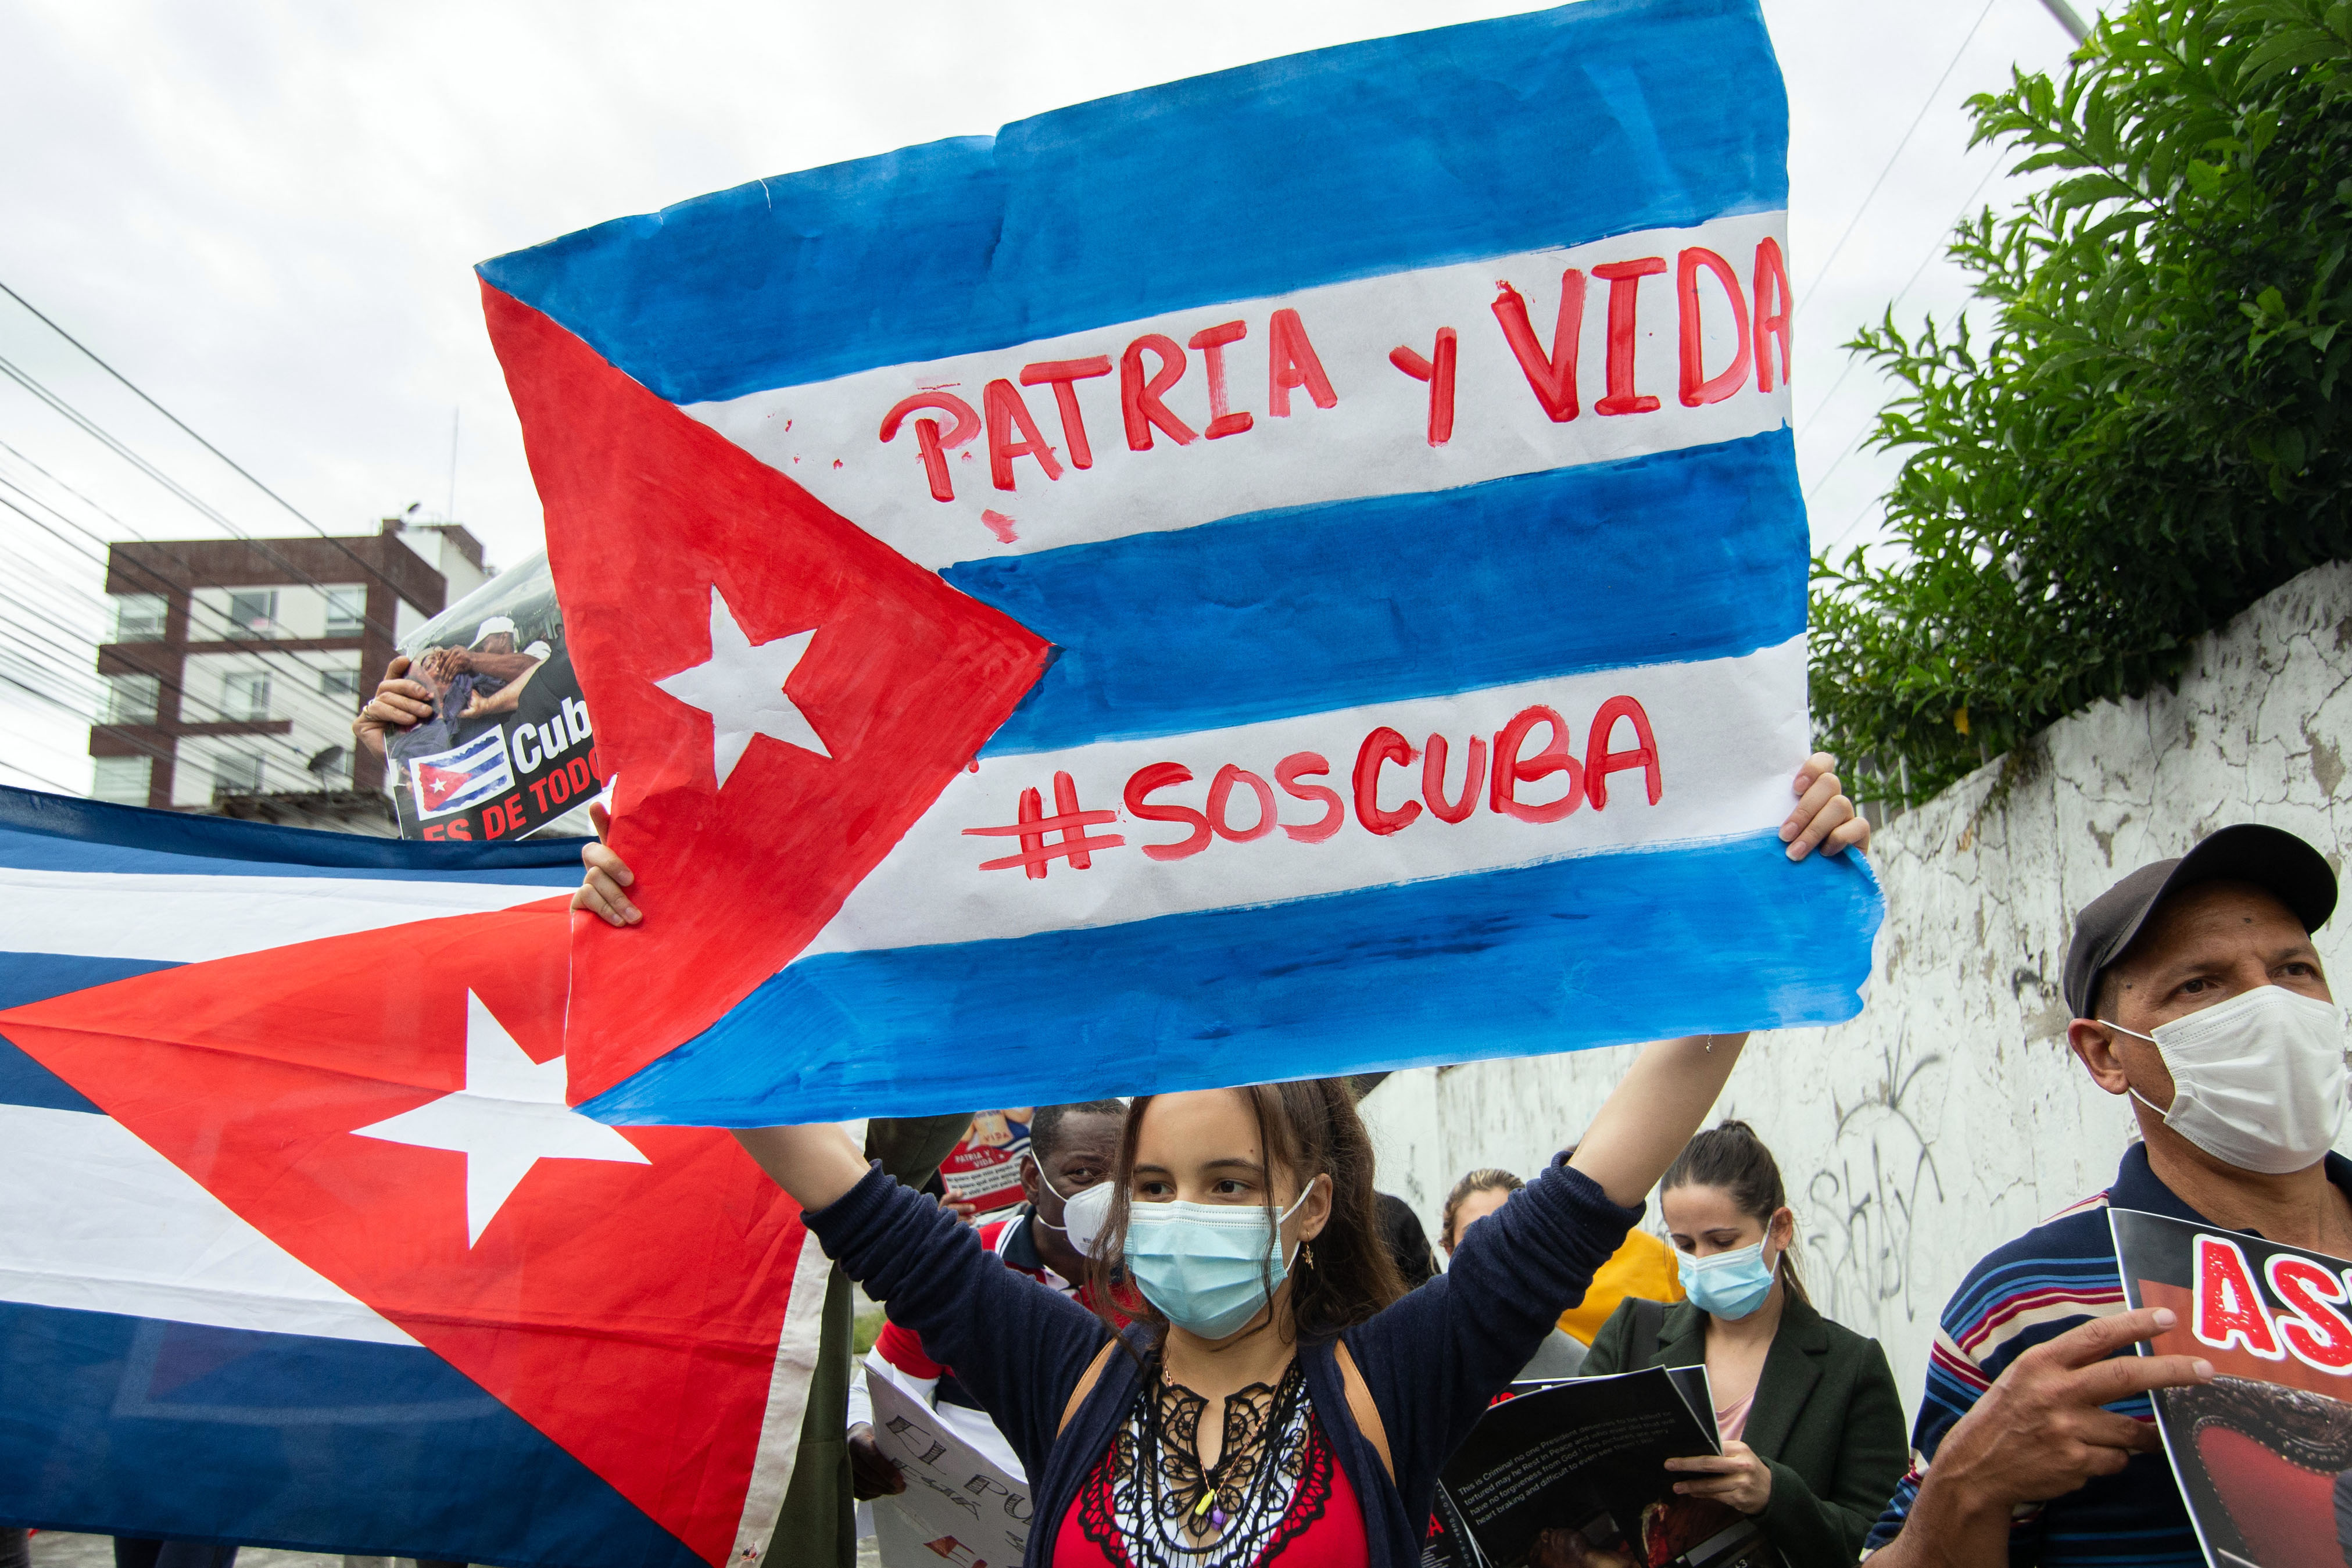 """A protester holds up a hand-drawn Cuban flag sign that reads """"Patria y vida, SOS Cuba."""""""